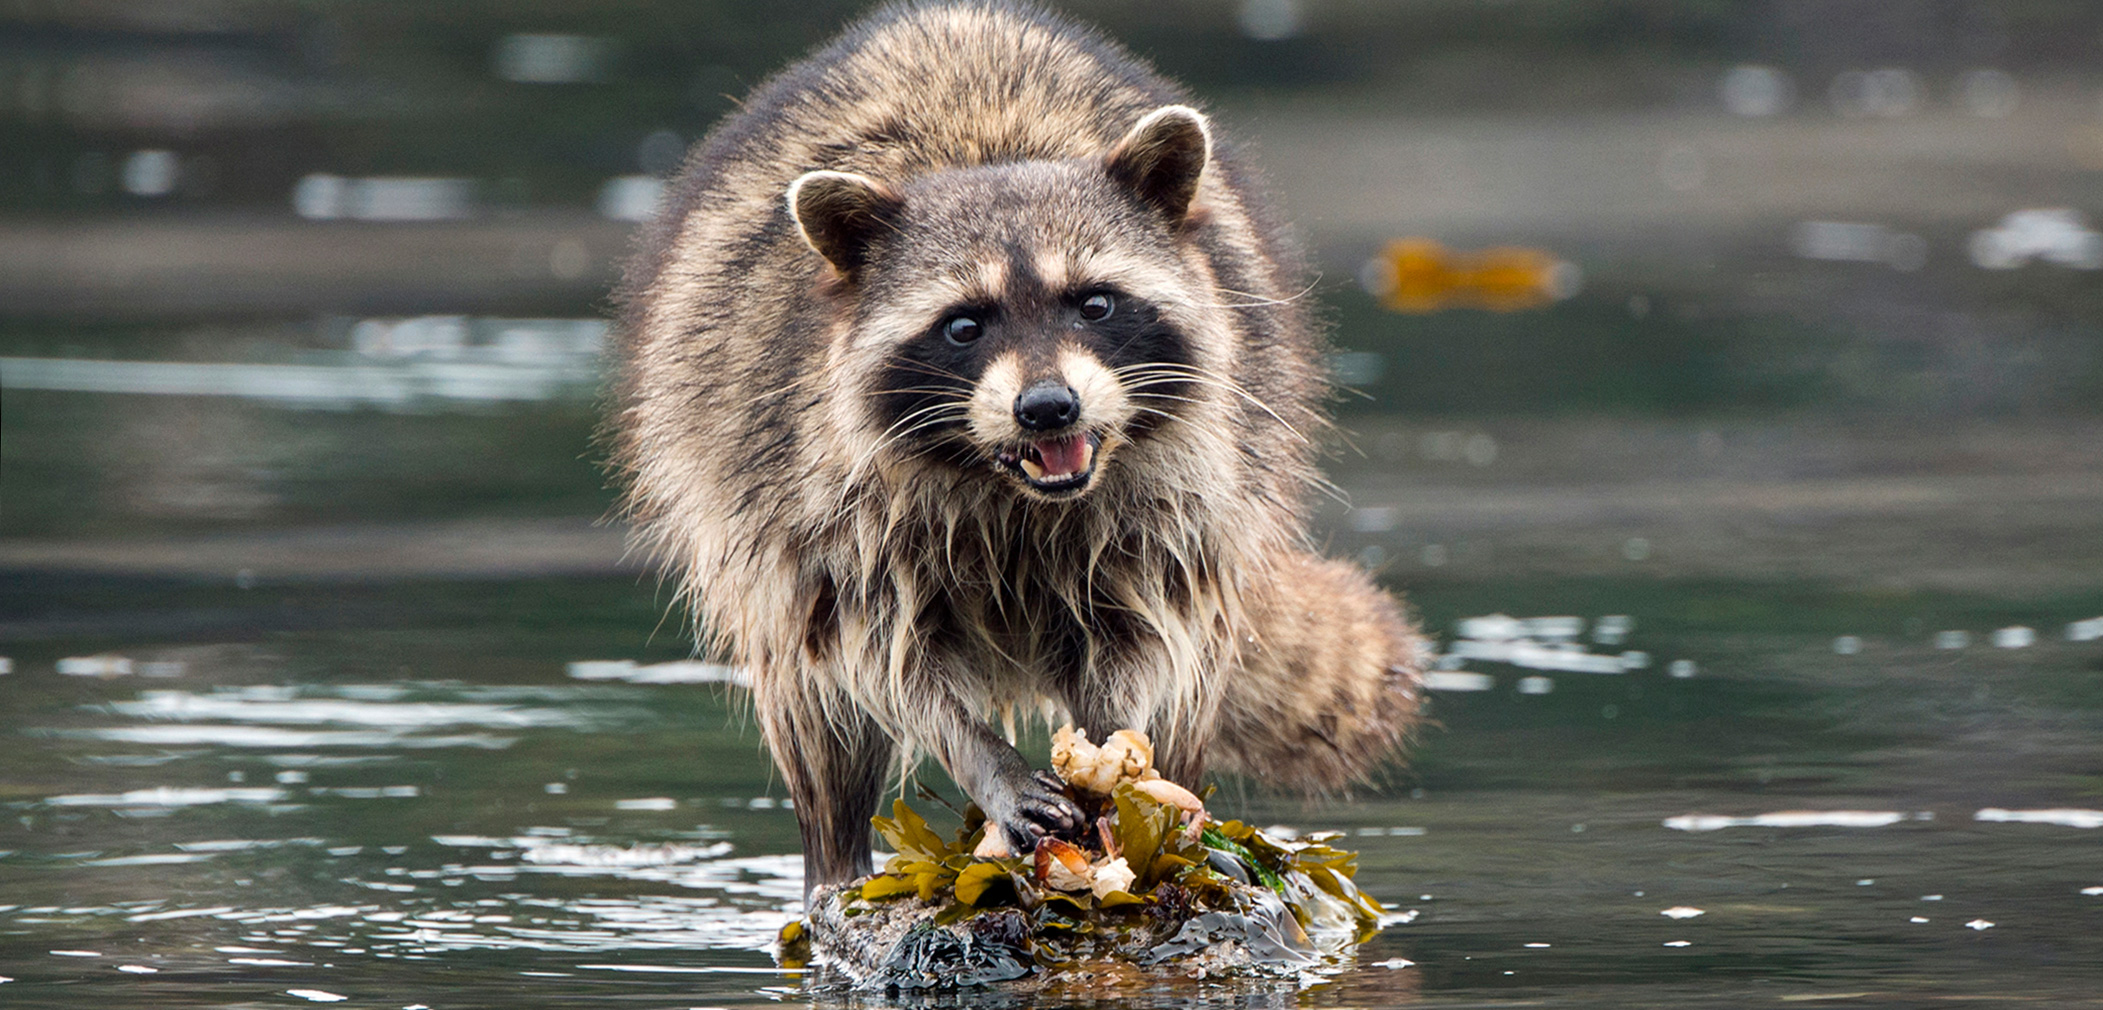 The living is easy, too easy, for raccoons living on islands with no predators. Photo by Shanna Baker